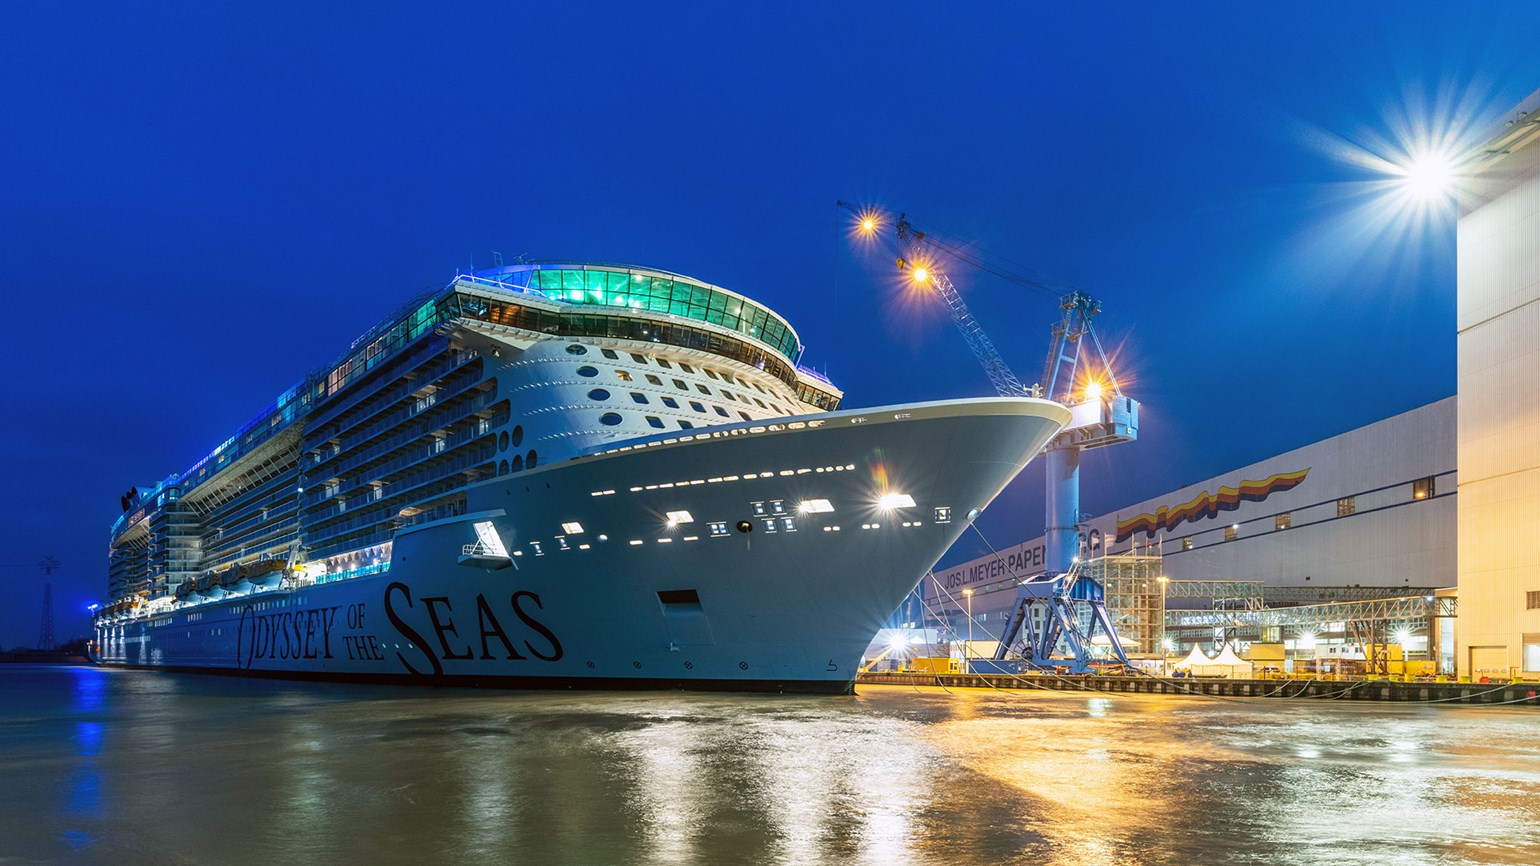 Royal Caribbean's Odyssey of the Seas to premiere with fully vaccinated cruises from Israel